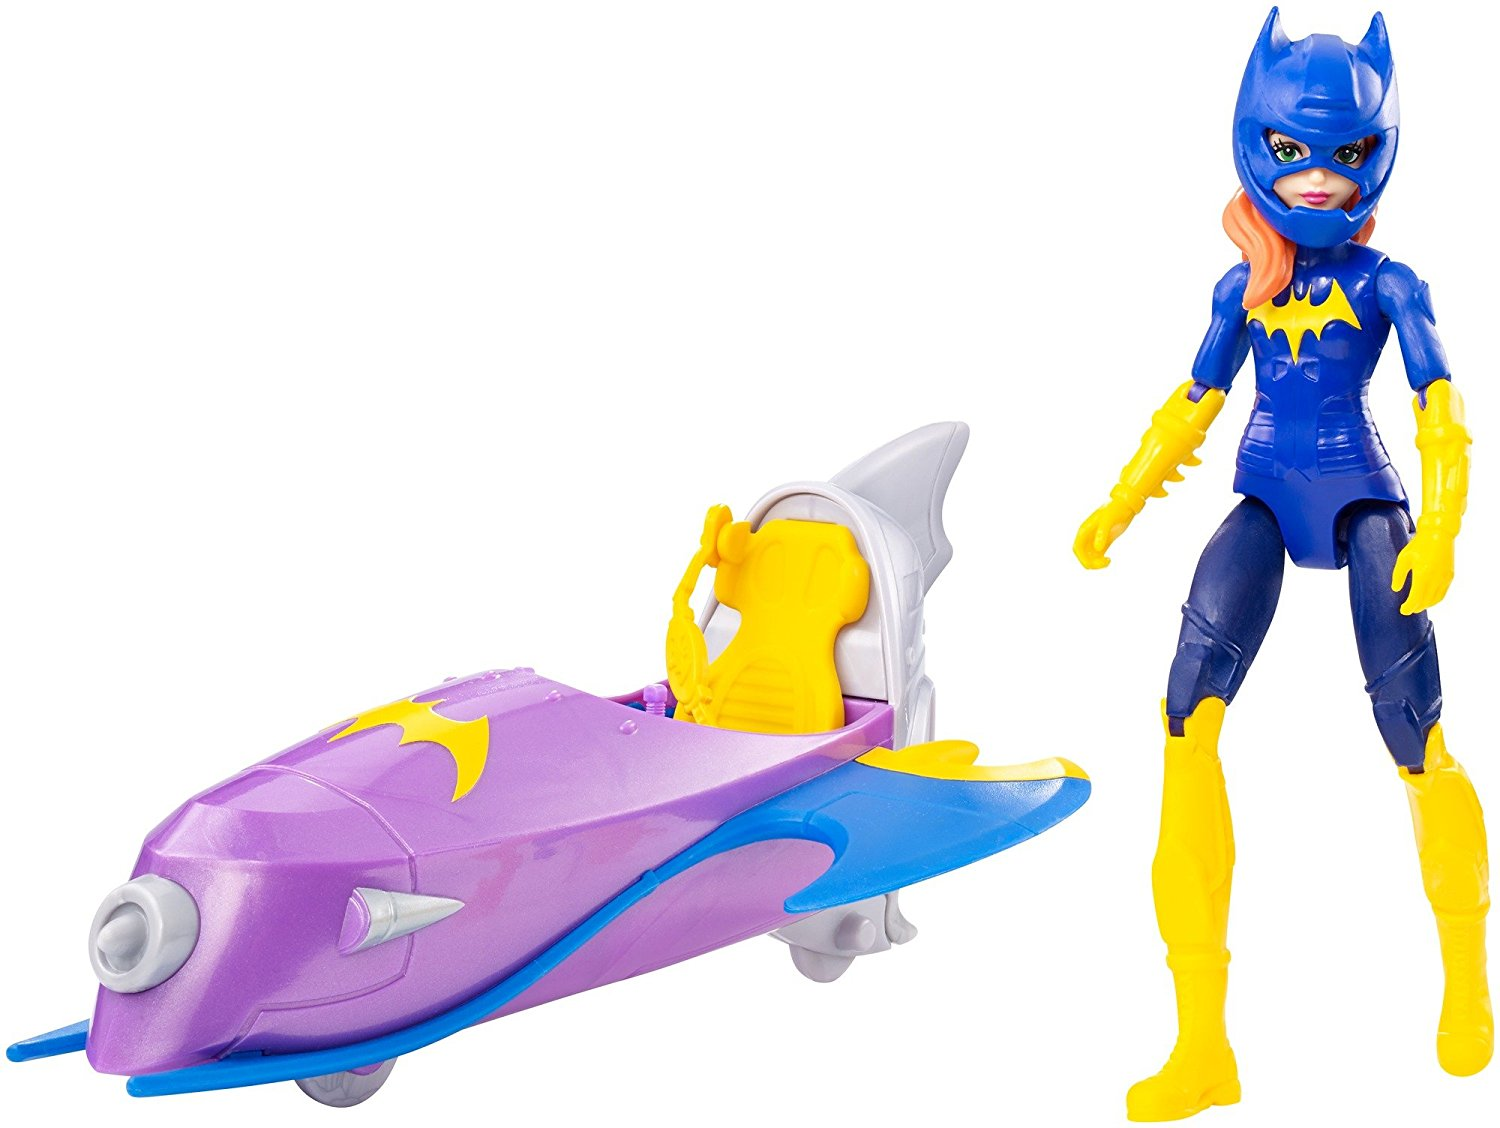 DC Super Hero Girls Batgirl Action Figure with Batjet Vehicle